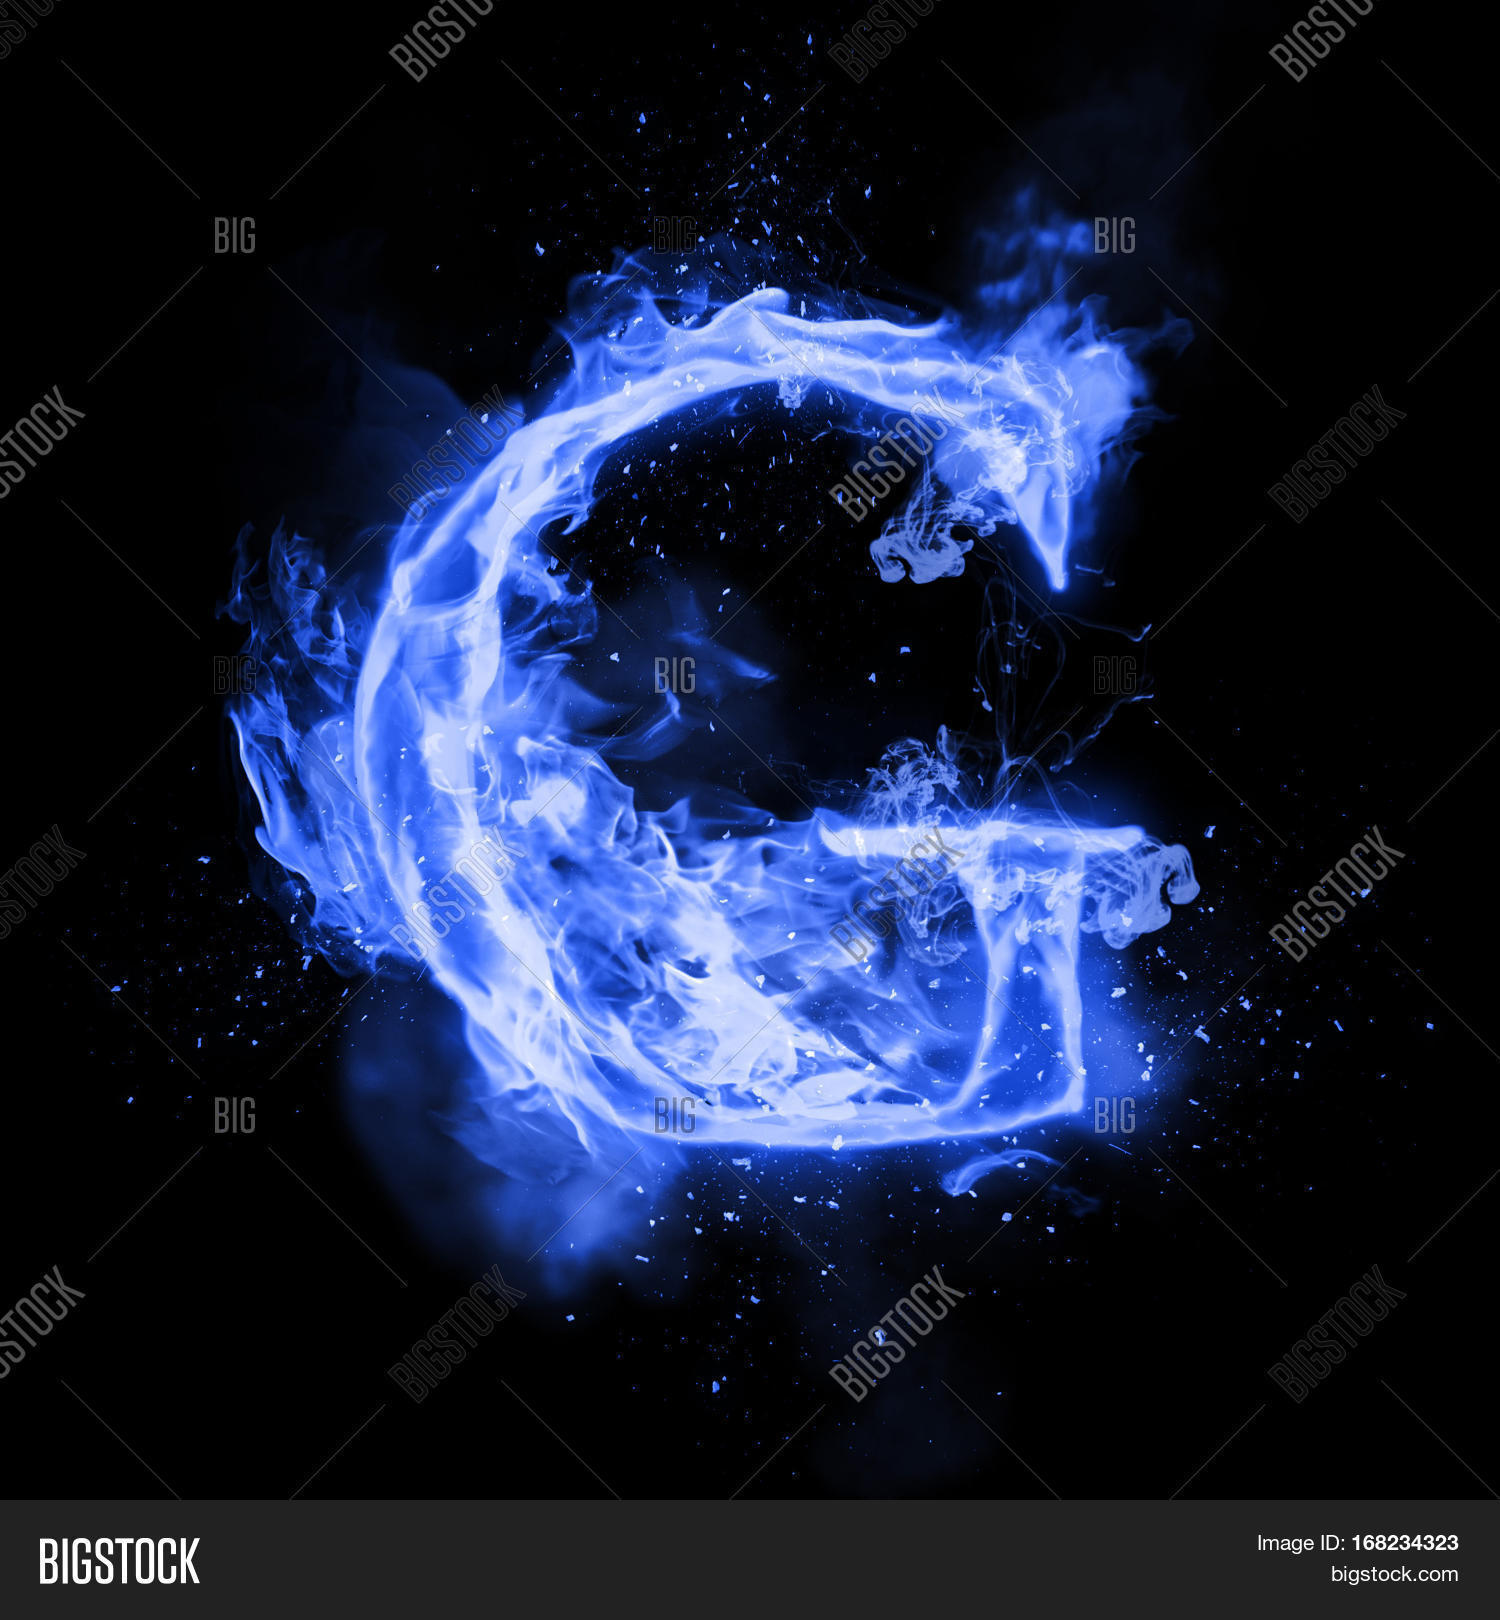 Fire Letter G Burning Image Photo Free Trial Bigstock